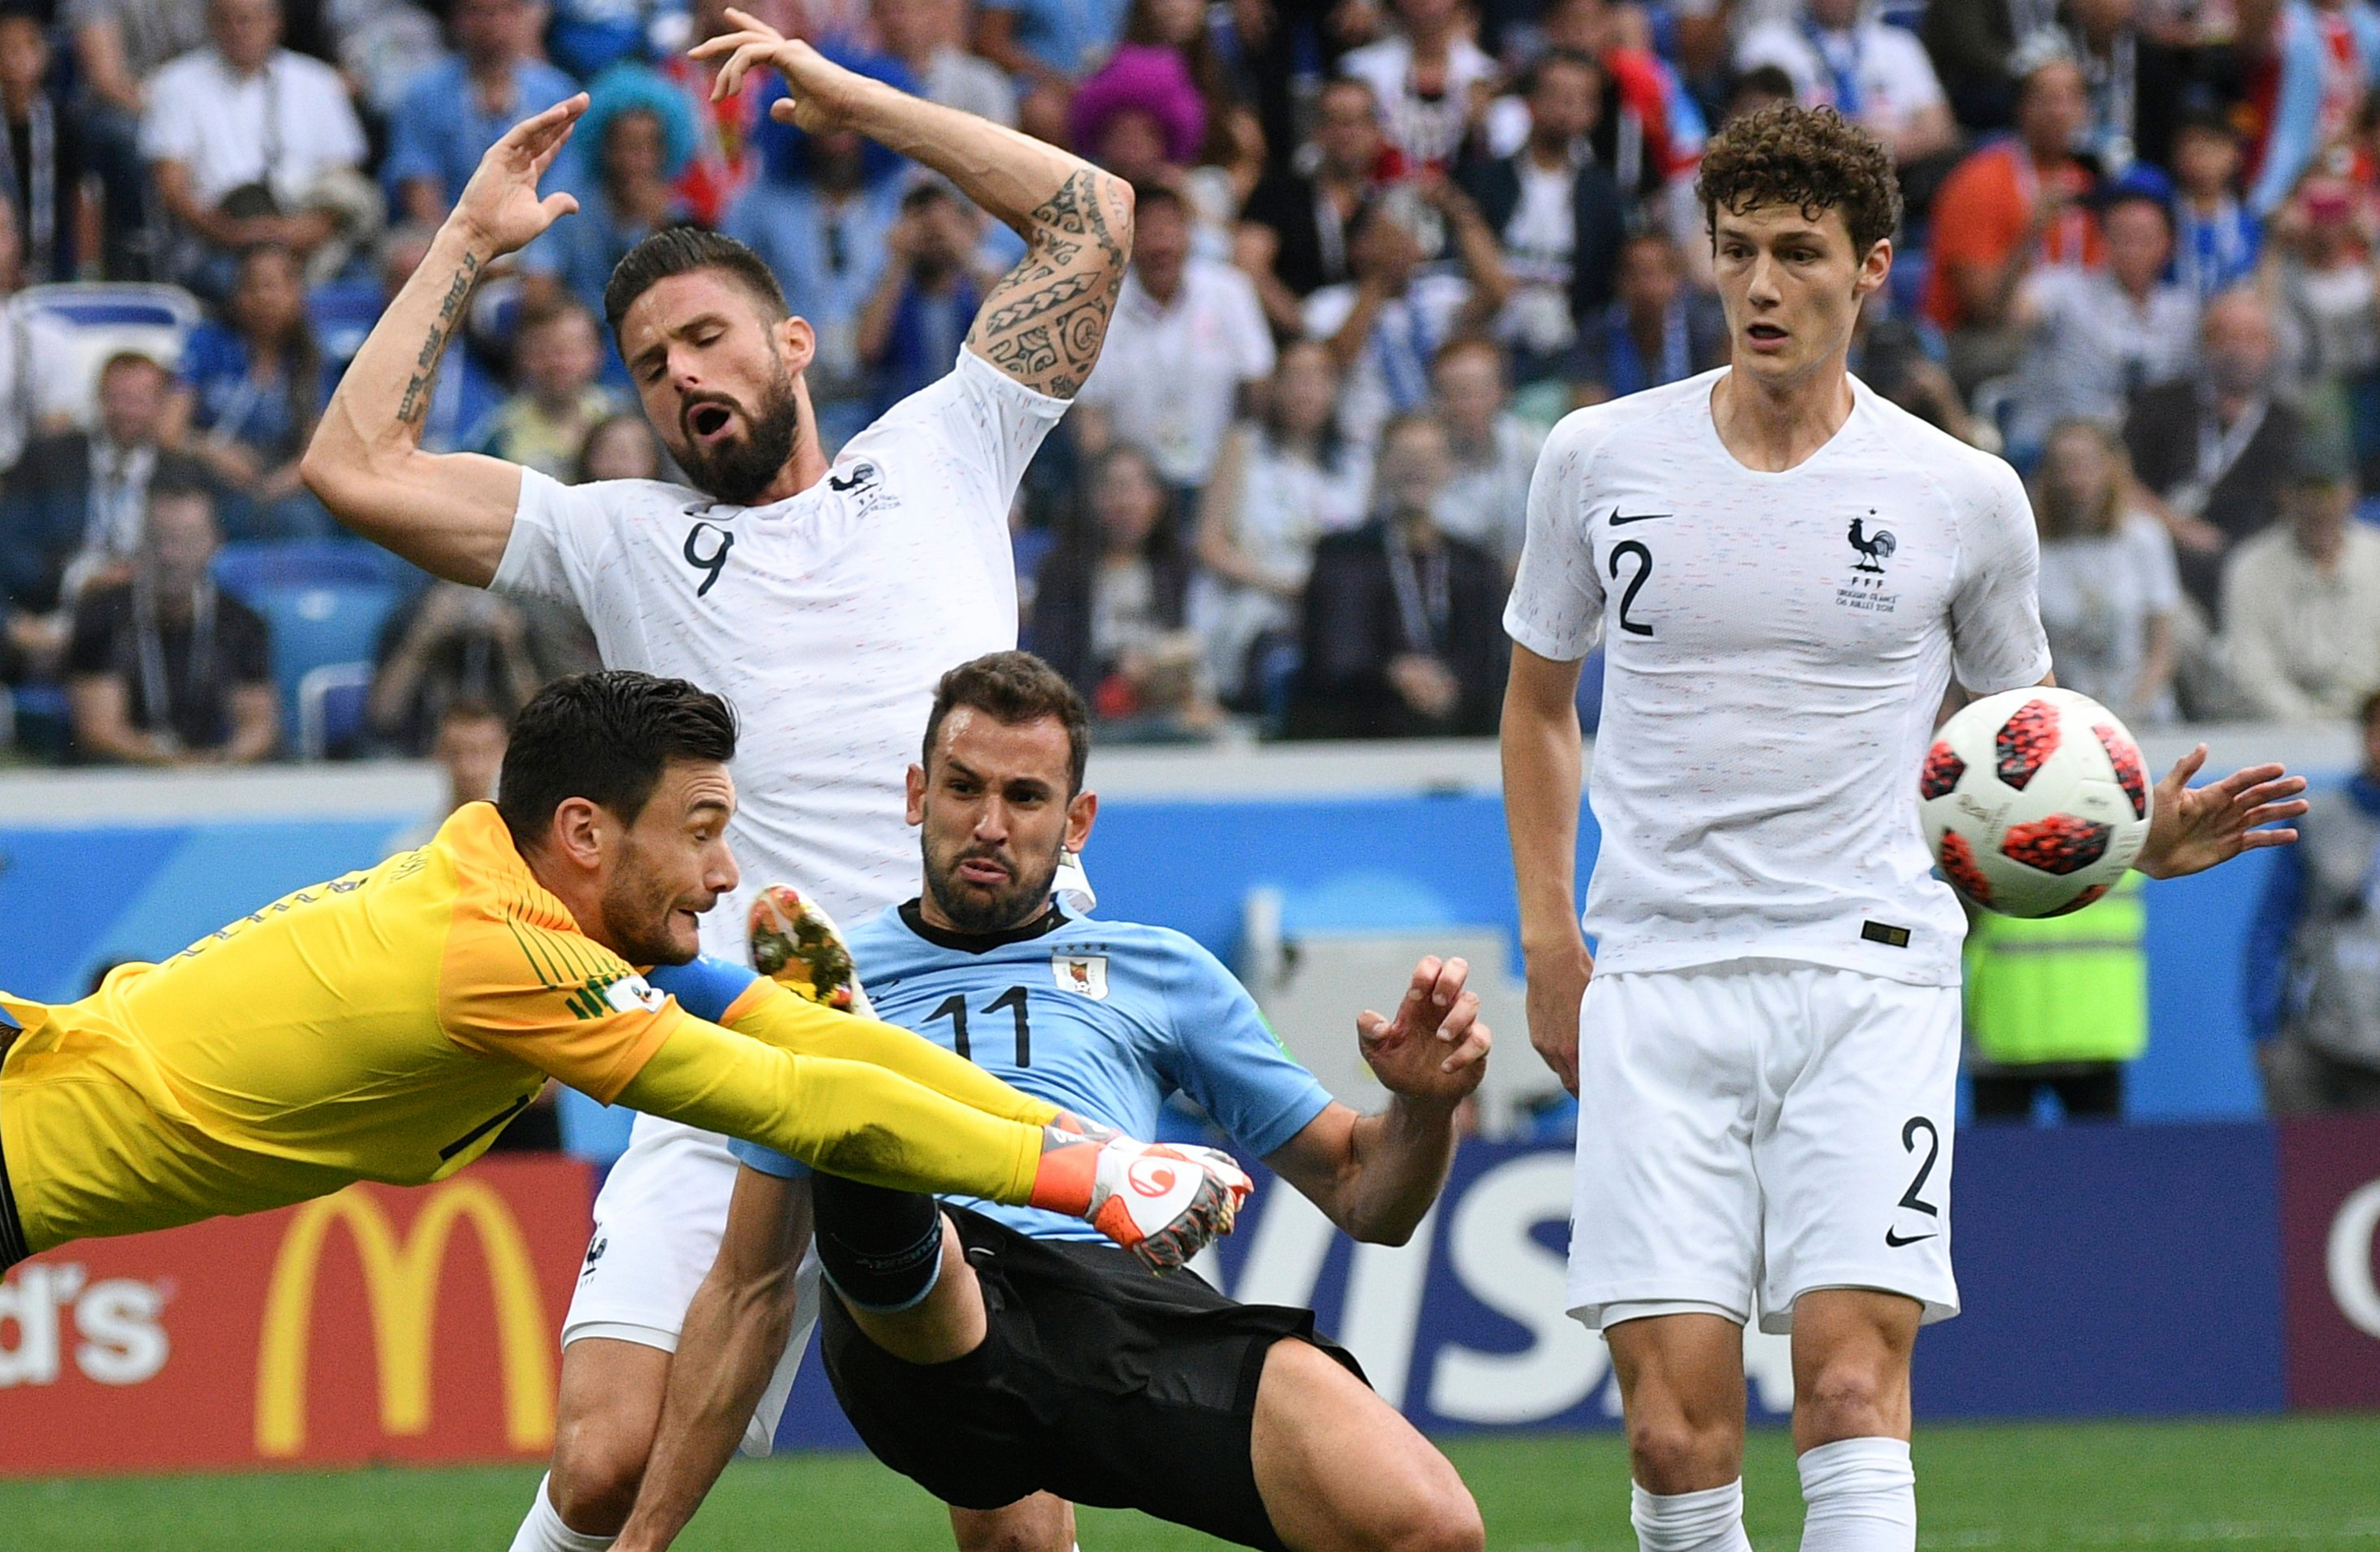 France's goalkeeper Hugo Lloris, left, makes a save during the quarterfinal soccer game between Uruguay and France on July 6, 2018.